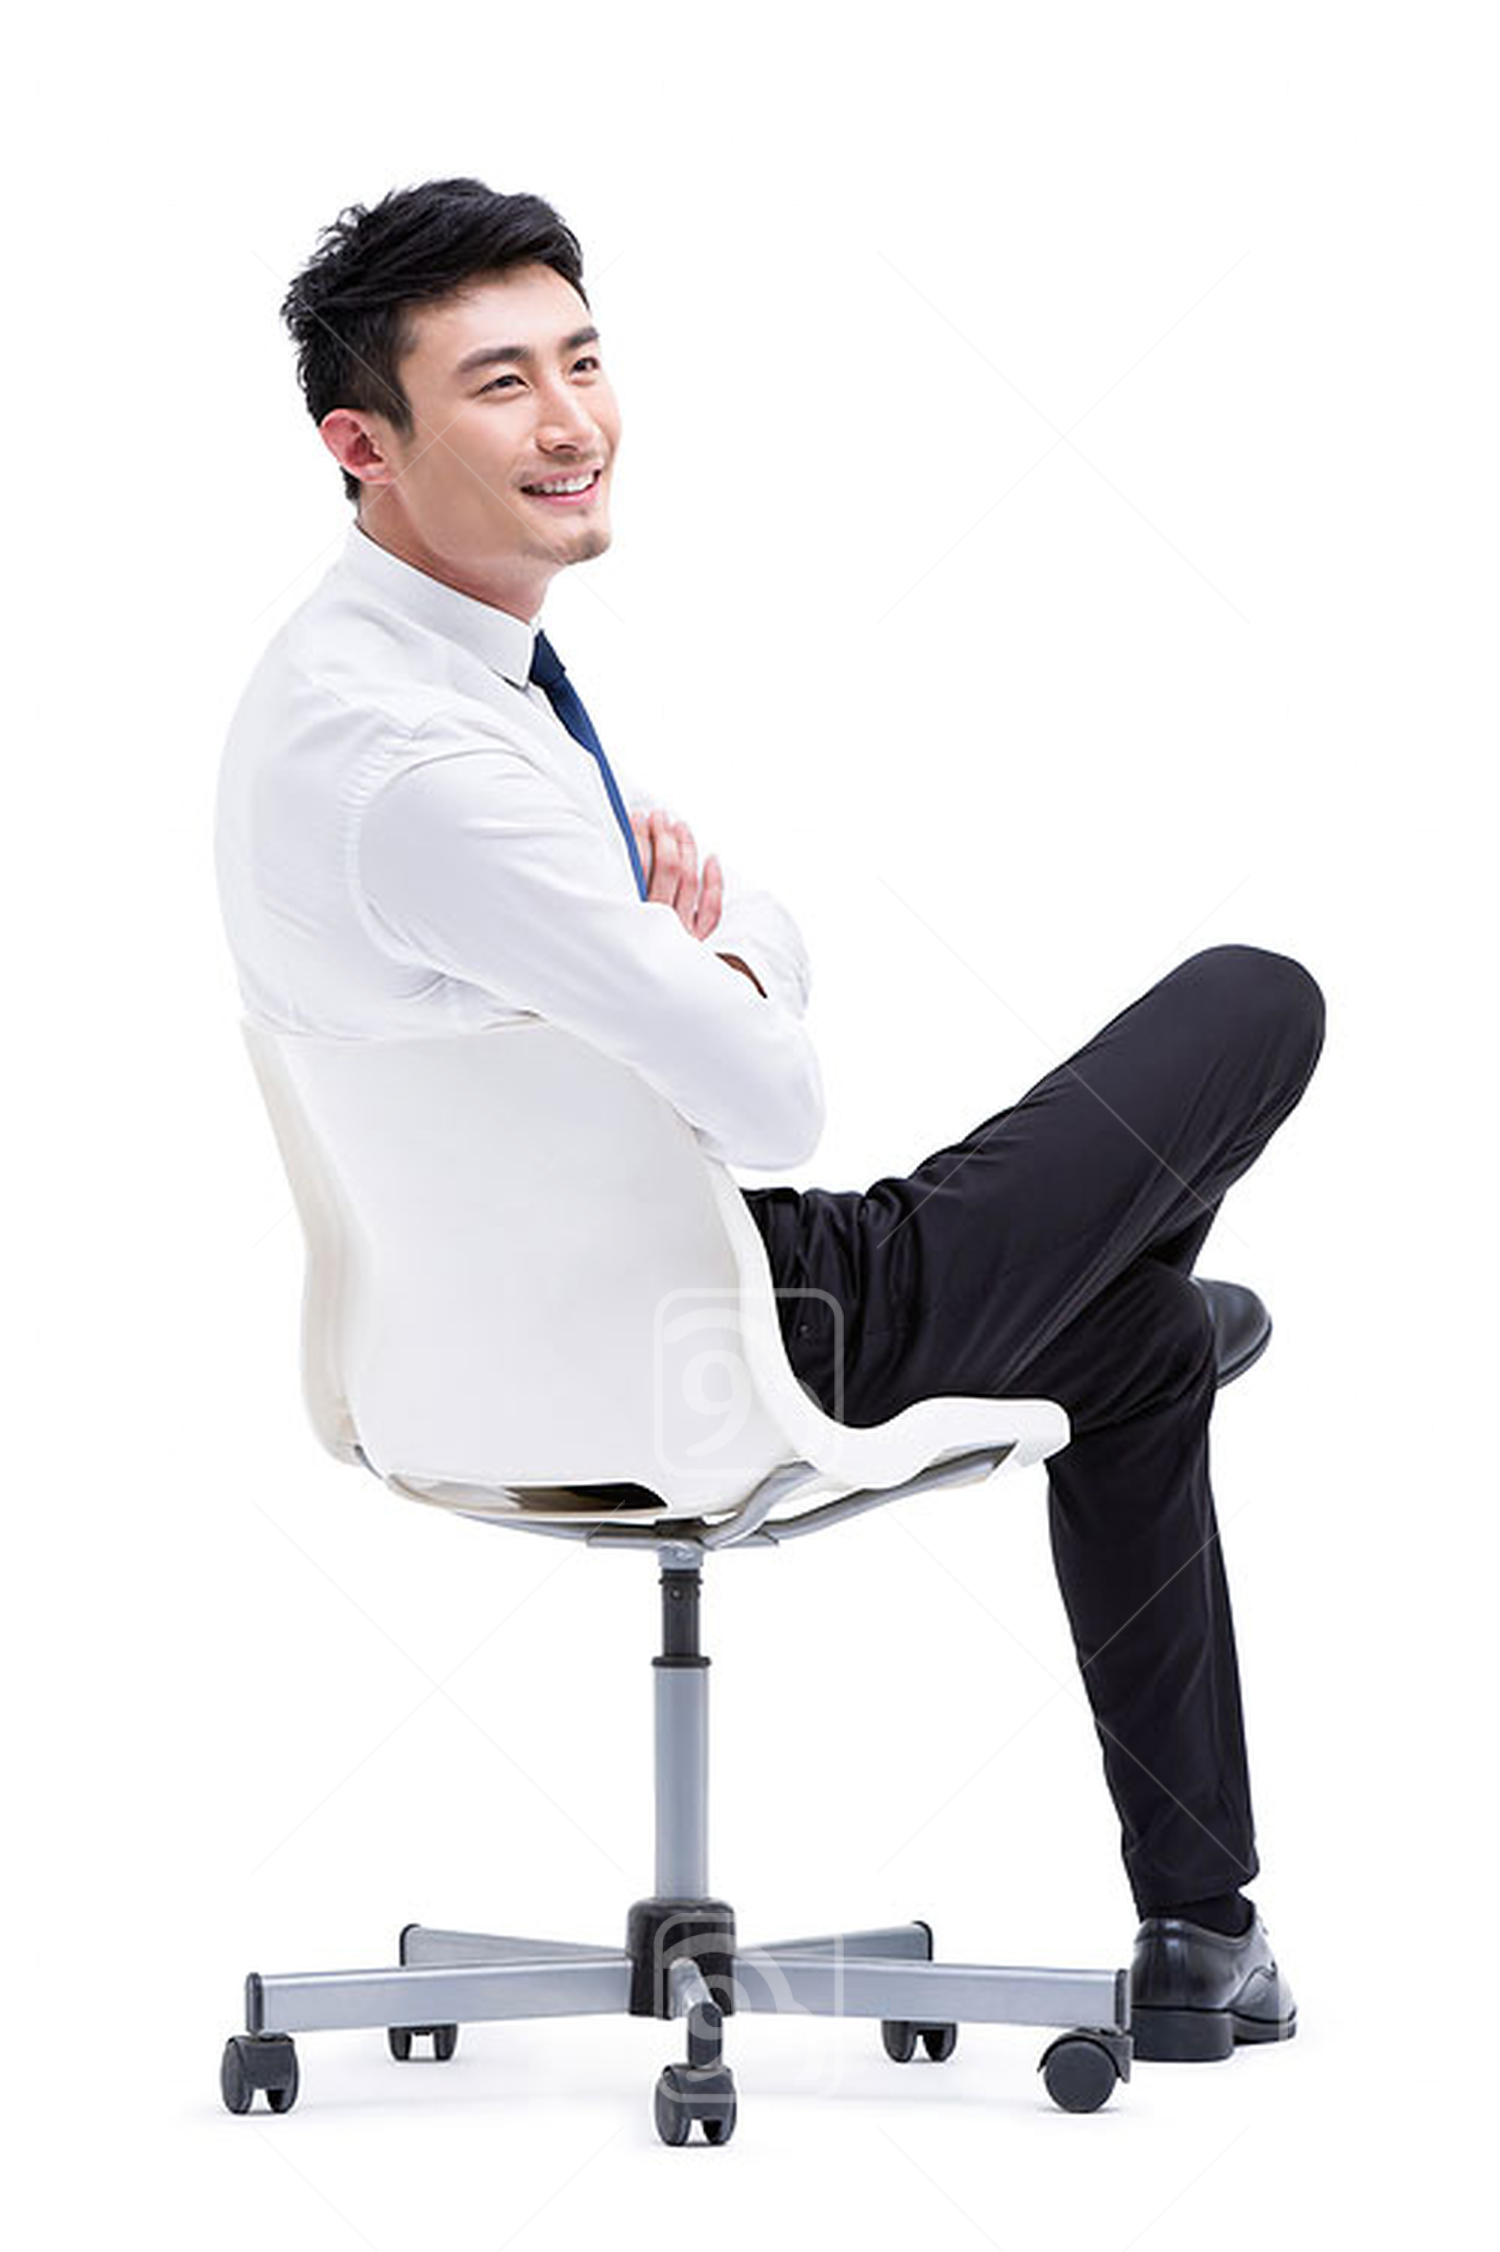 Confident young Chinese businessman sitting on chair